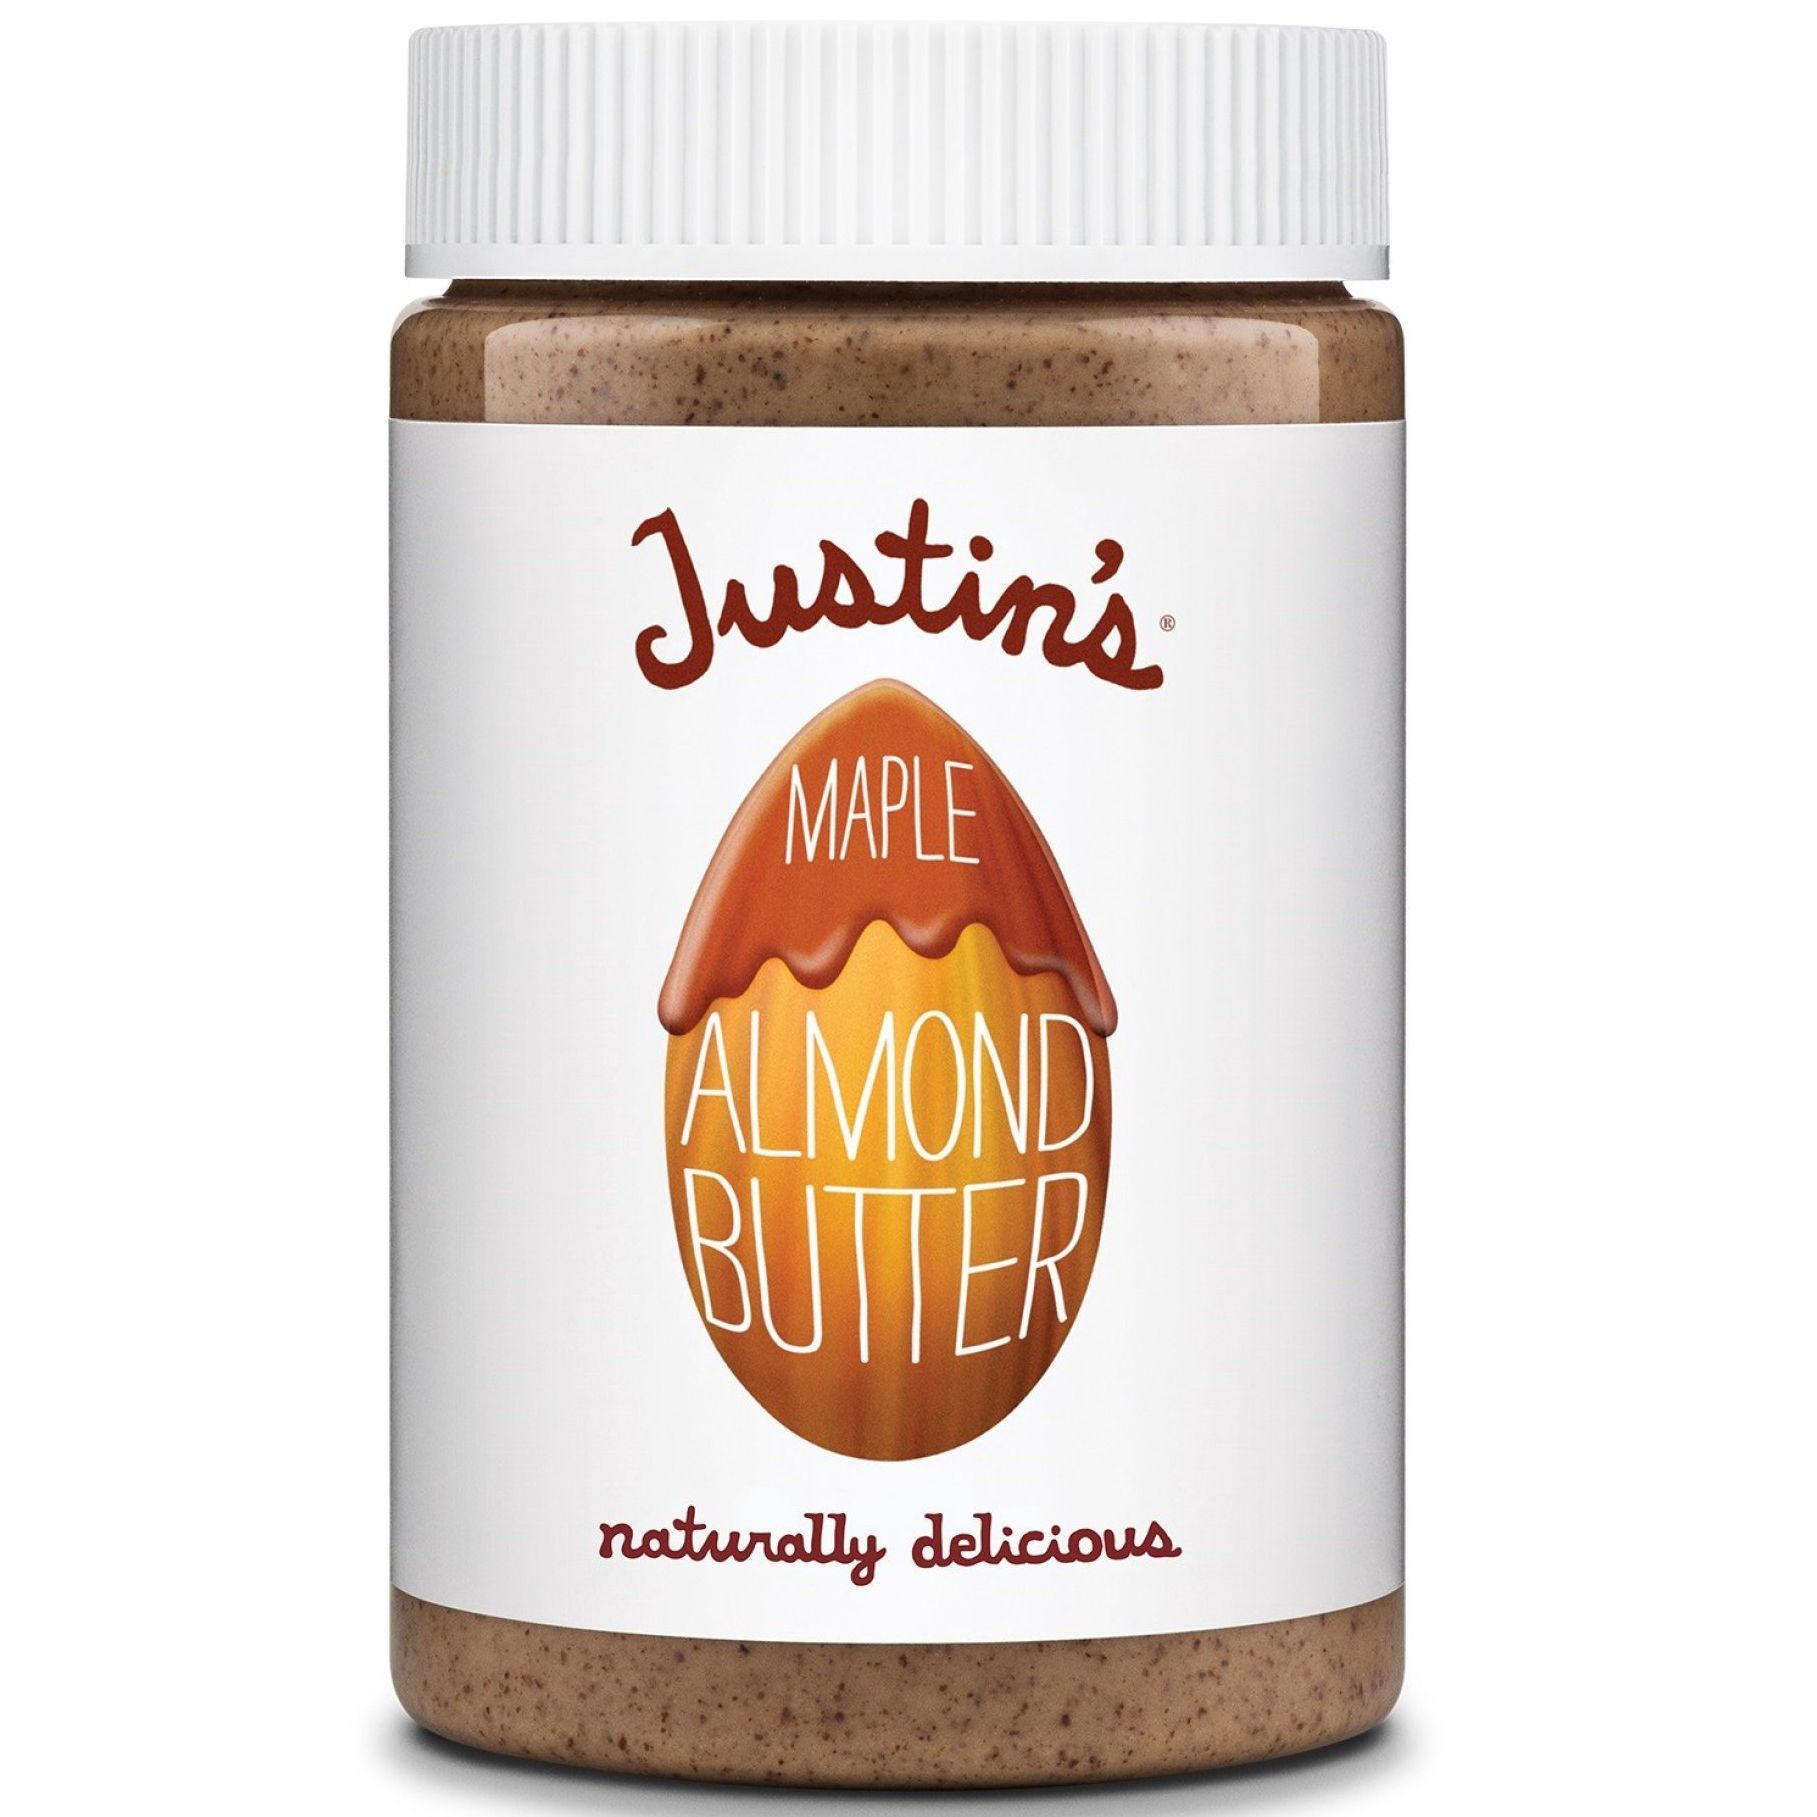 Food & Drink - Justin's - Maple Almond Butter, 454g